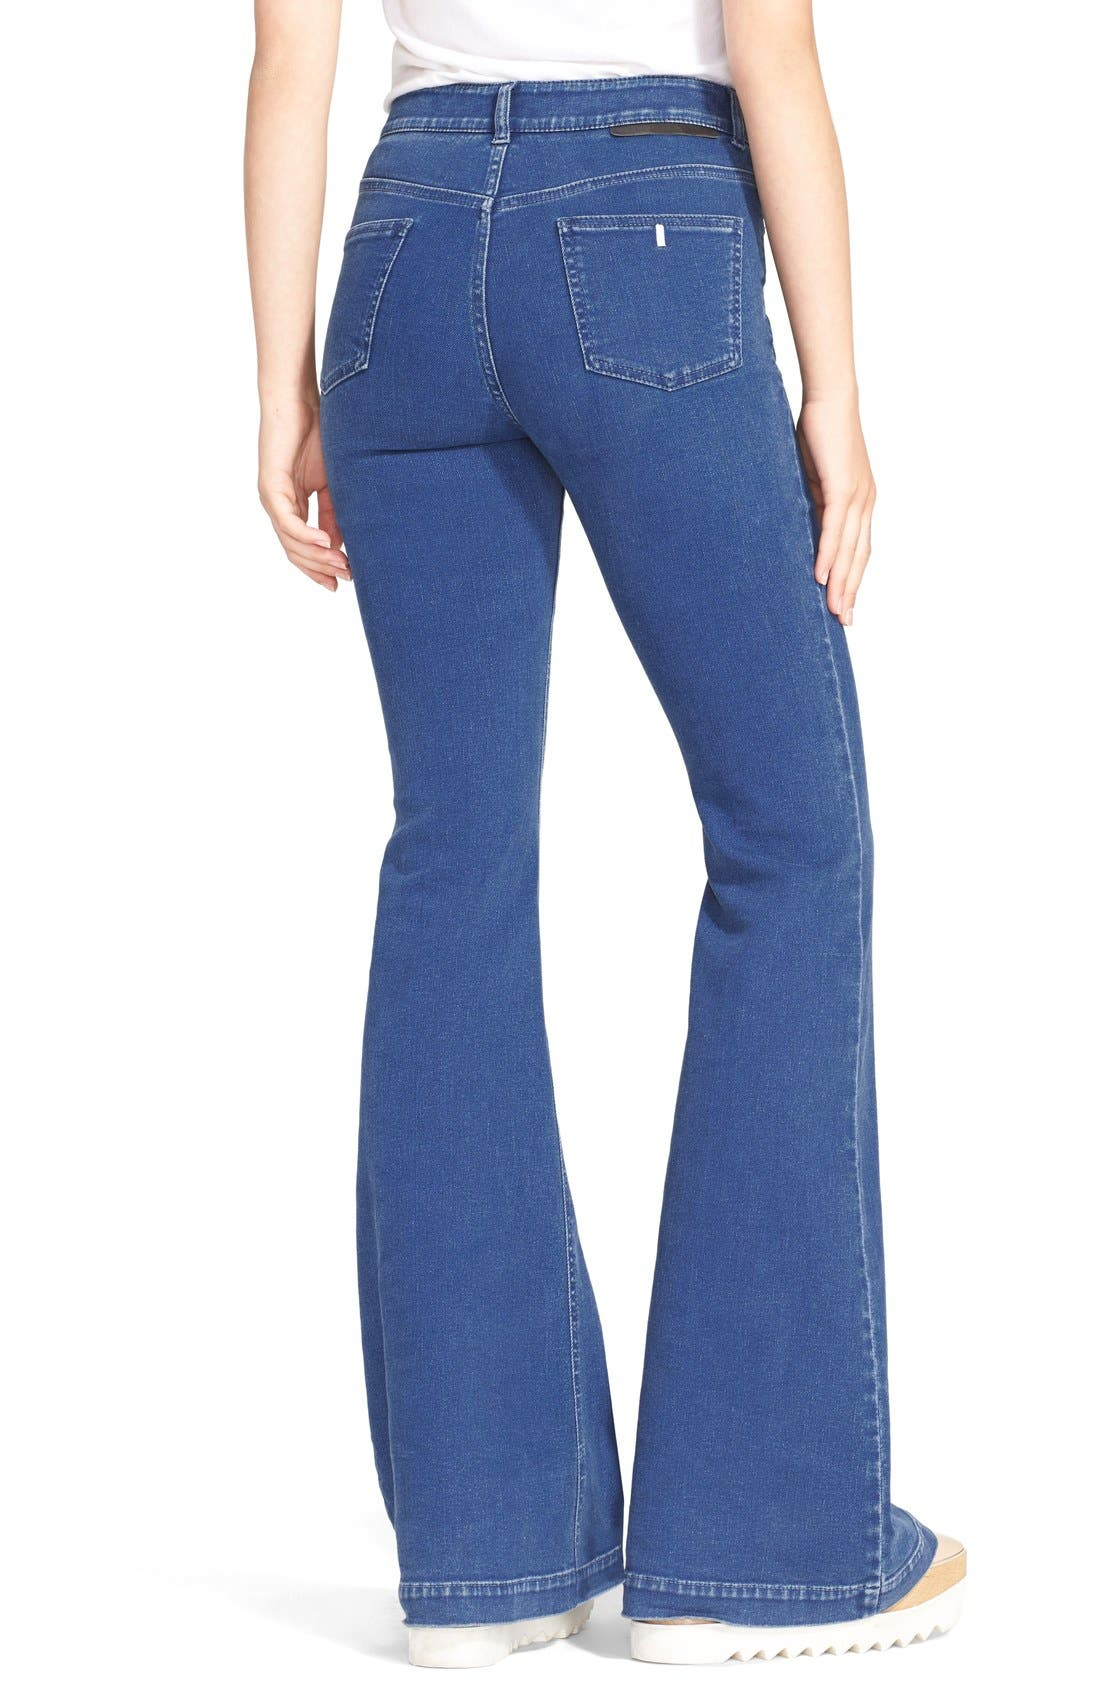 Alternate Image 2  - Stella McCartney 'The '70s' Flare Jeans